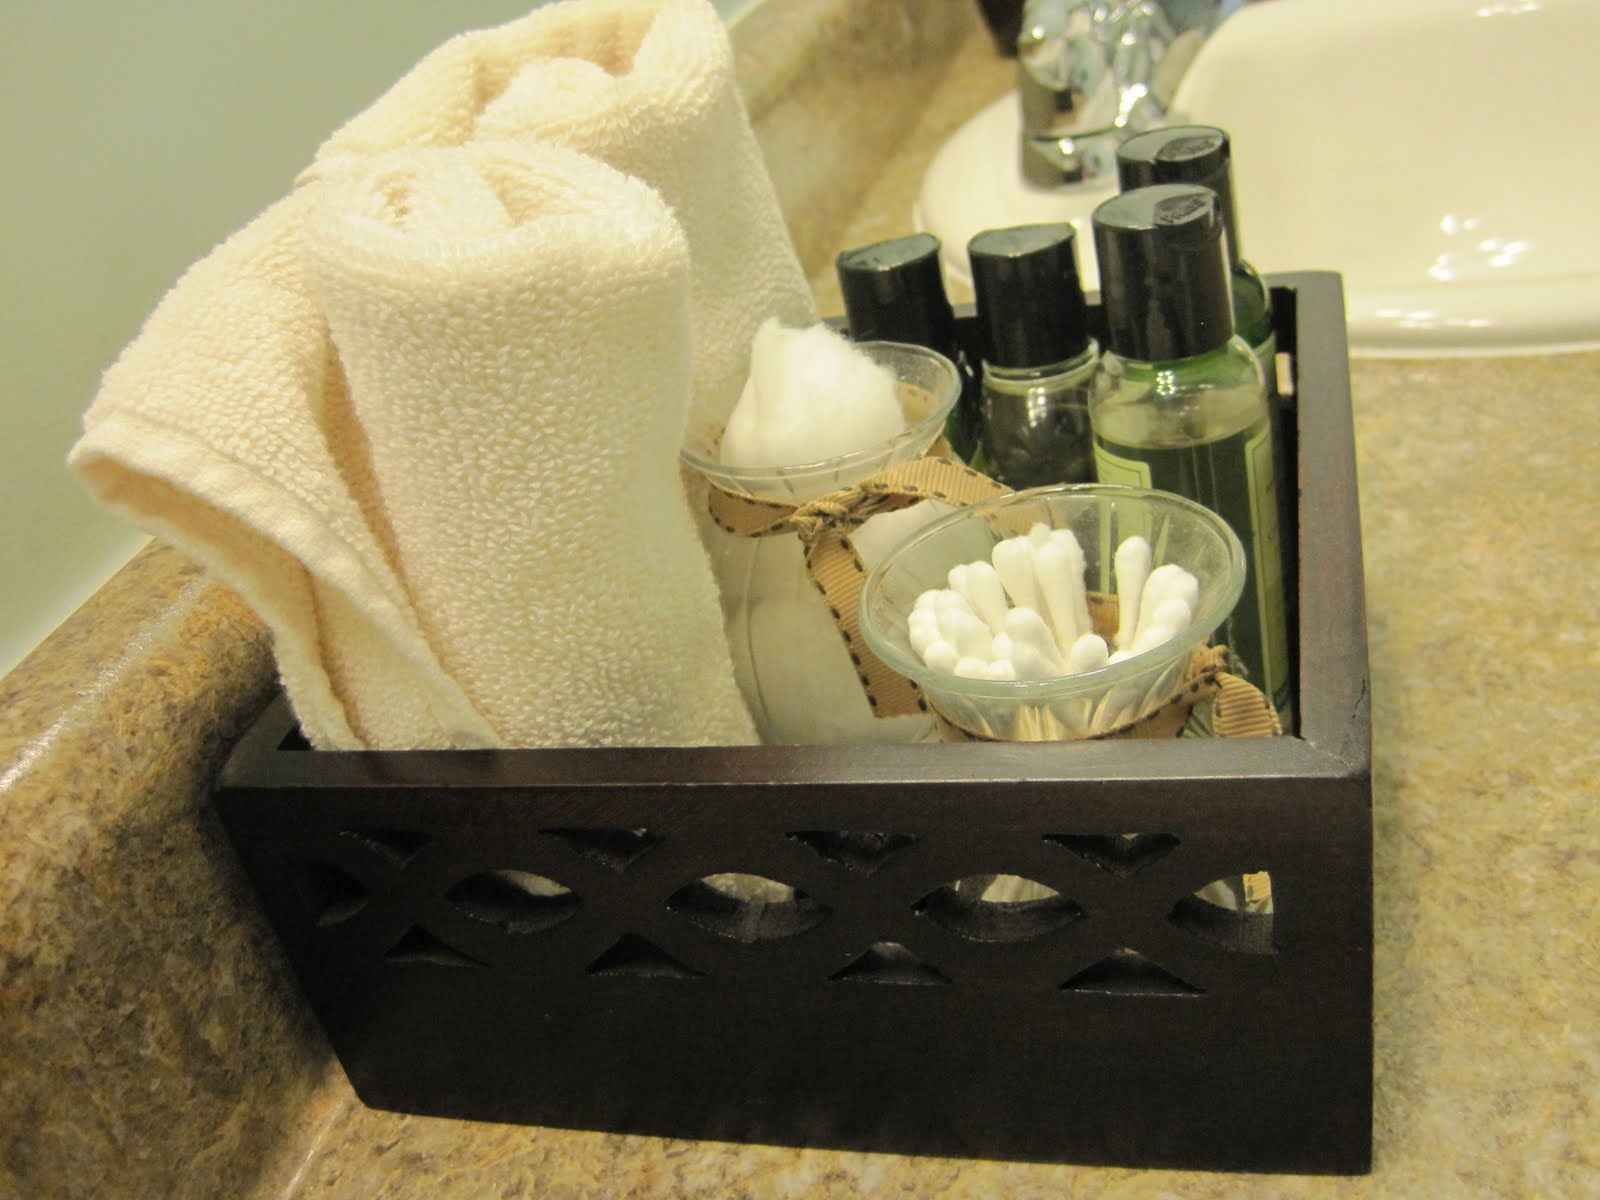 Toiletries For Guest Bathroom In Small Basket (We Bring Home The Hotel  Shampoo, Sewing Kit U0026 Soaps To Place In The Guest Bath Drawer!) Via  Google.com